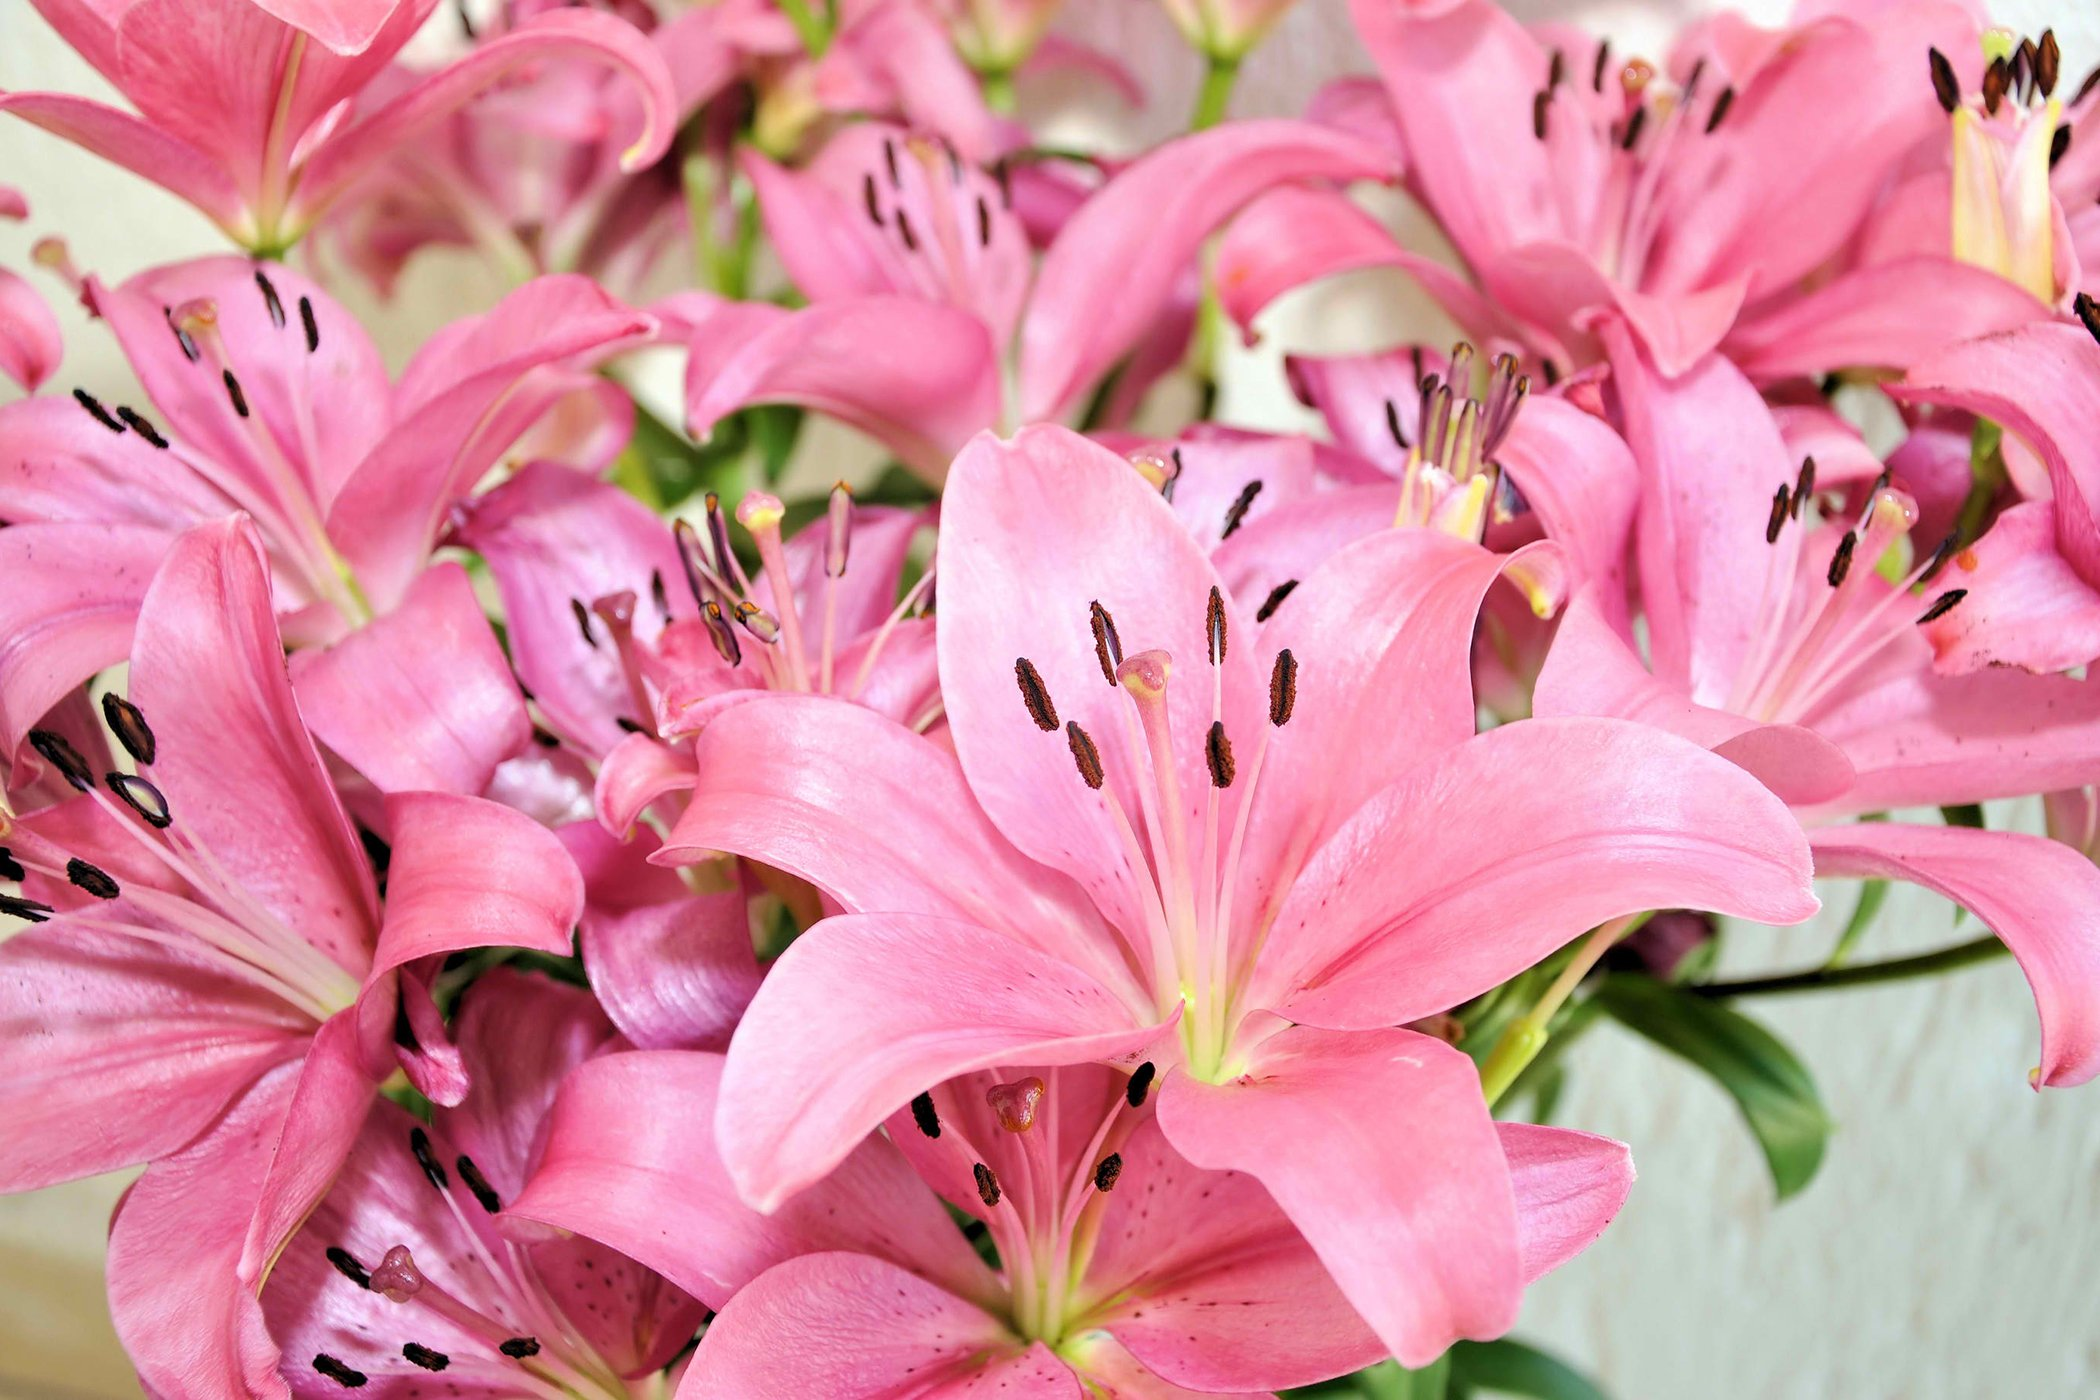 Climbing Lily Poisoning in Cats